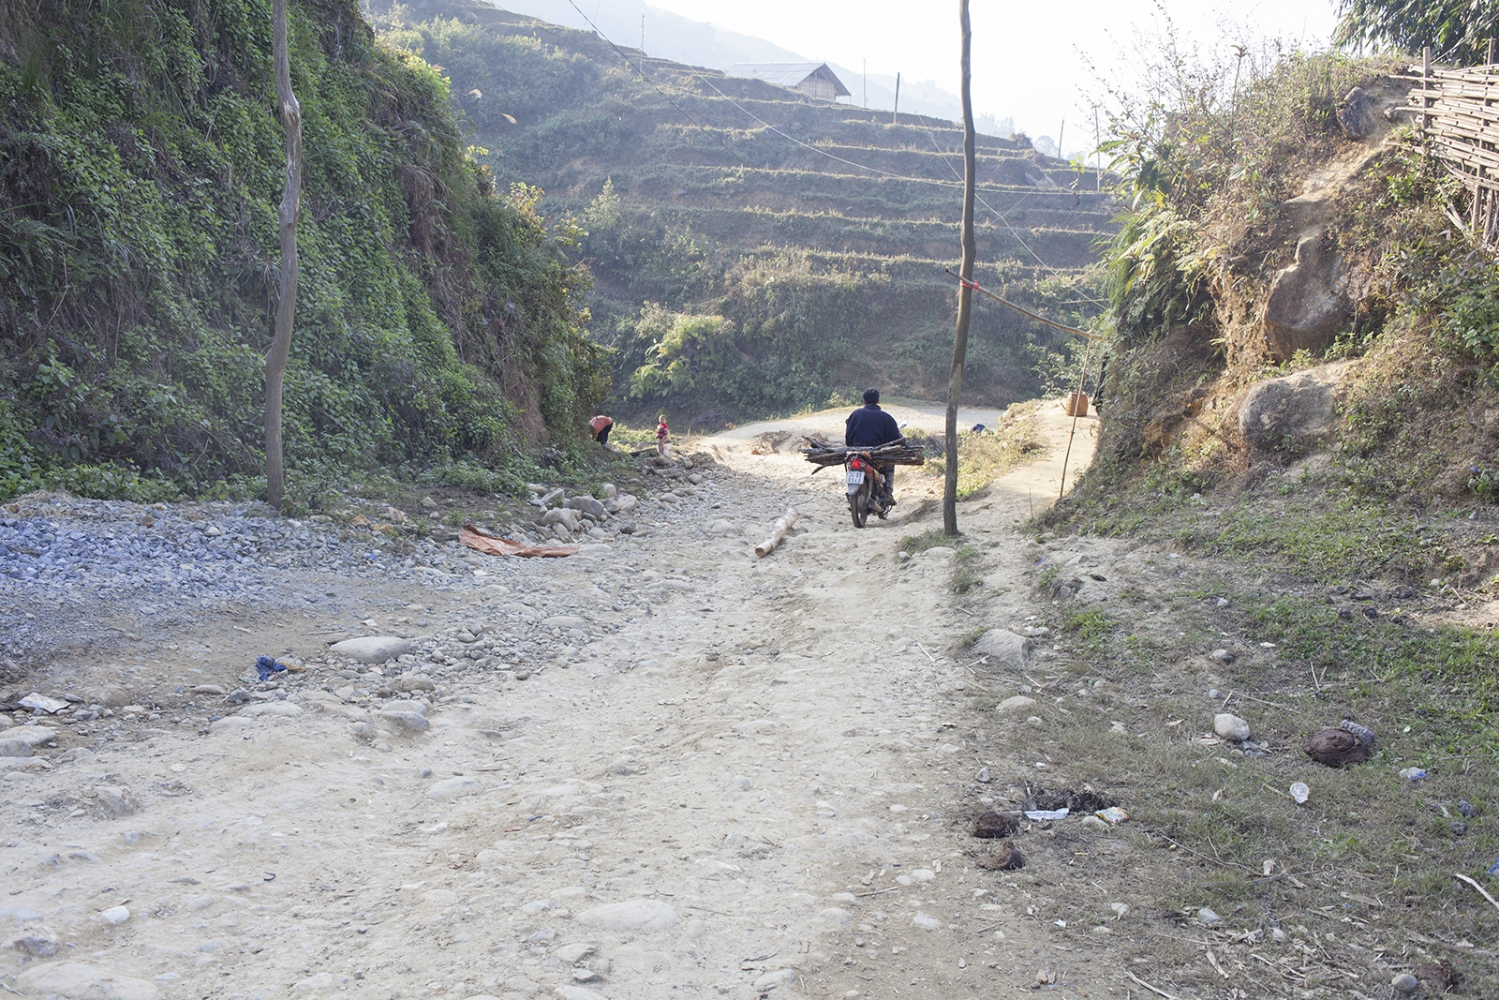 Everything gets transported by motorcycle or scooter in the valley.